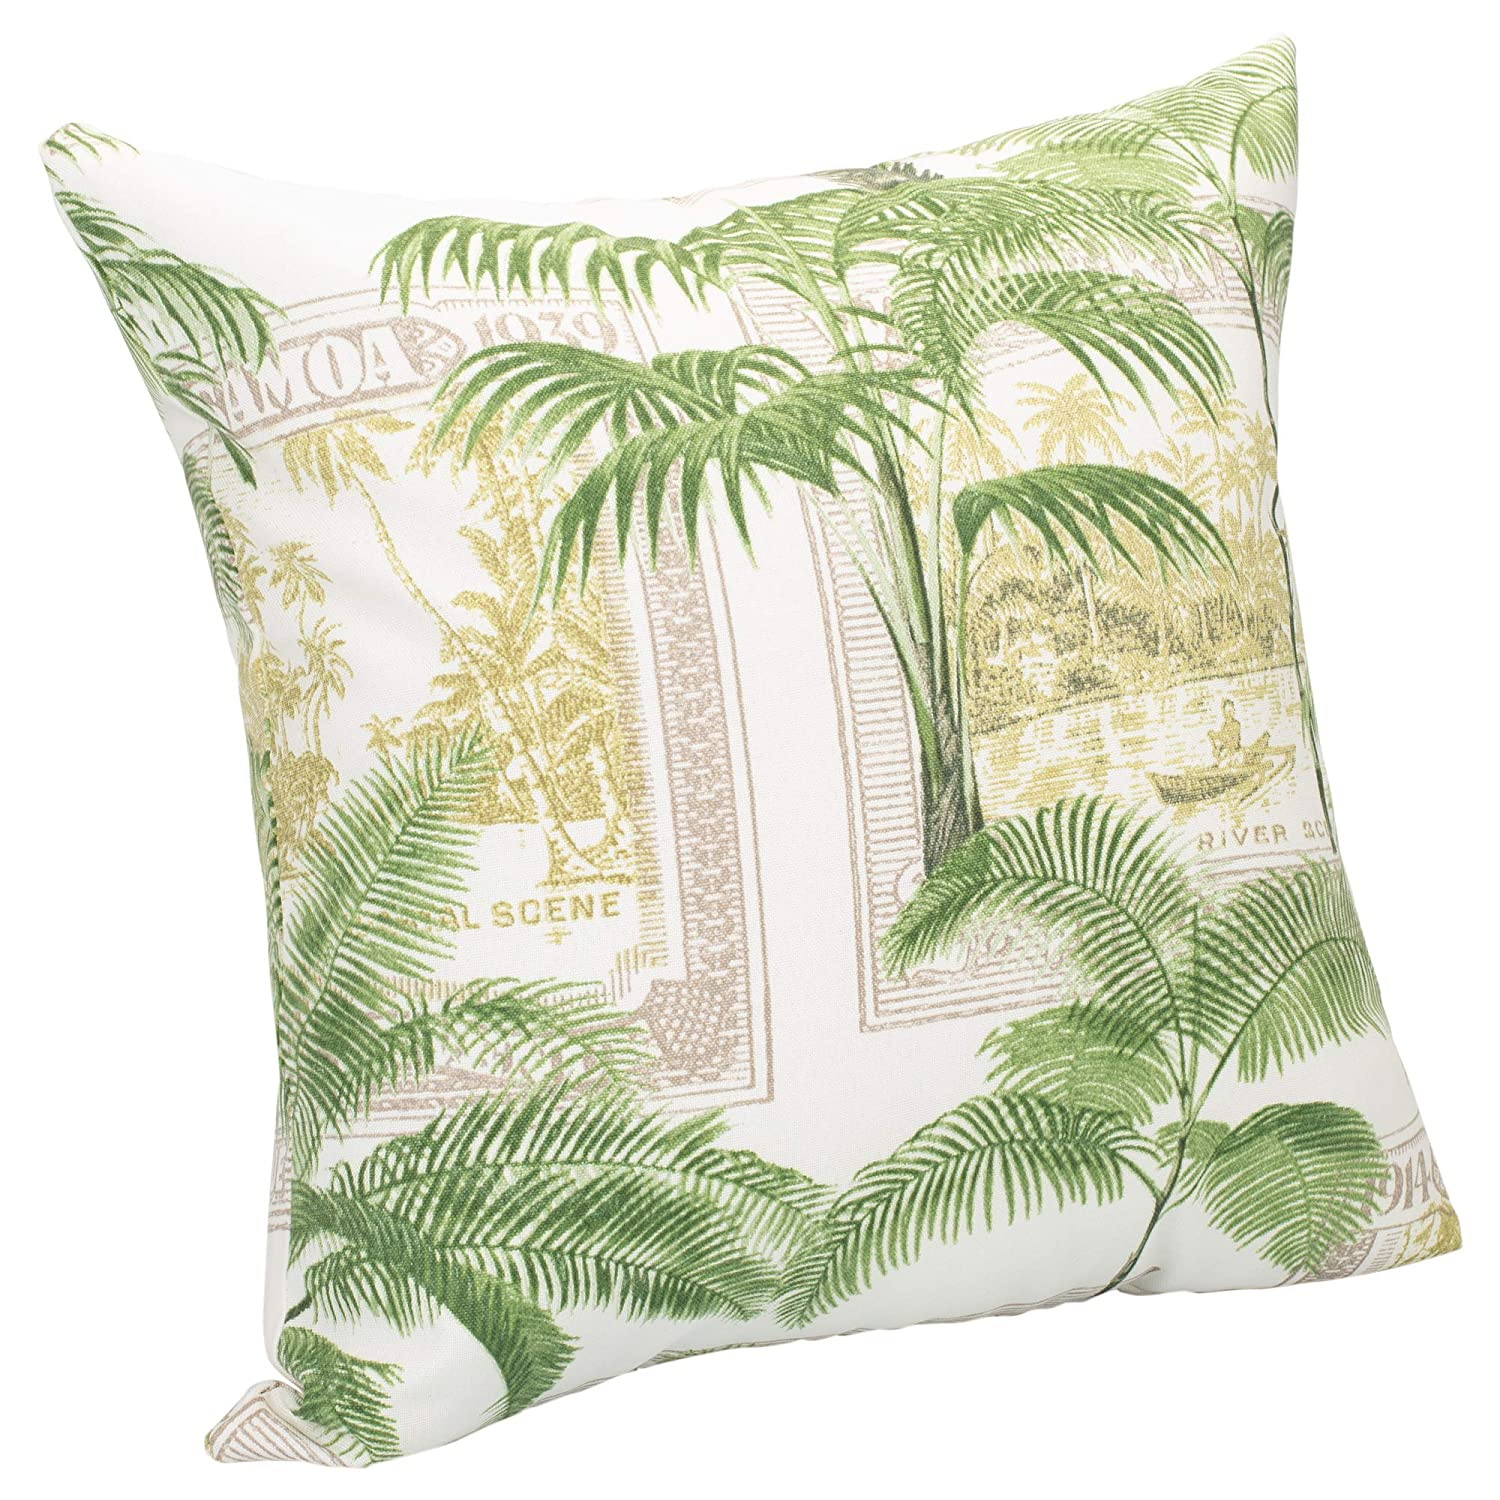 Jungle Green Palm Tree Foliage Pattern 16 x 16 Indoor Outdoor Throw Pillows; Pack of 2